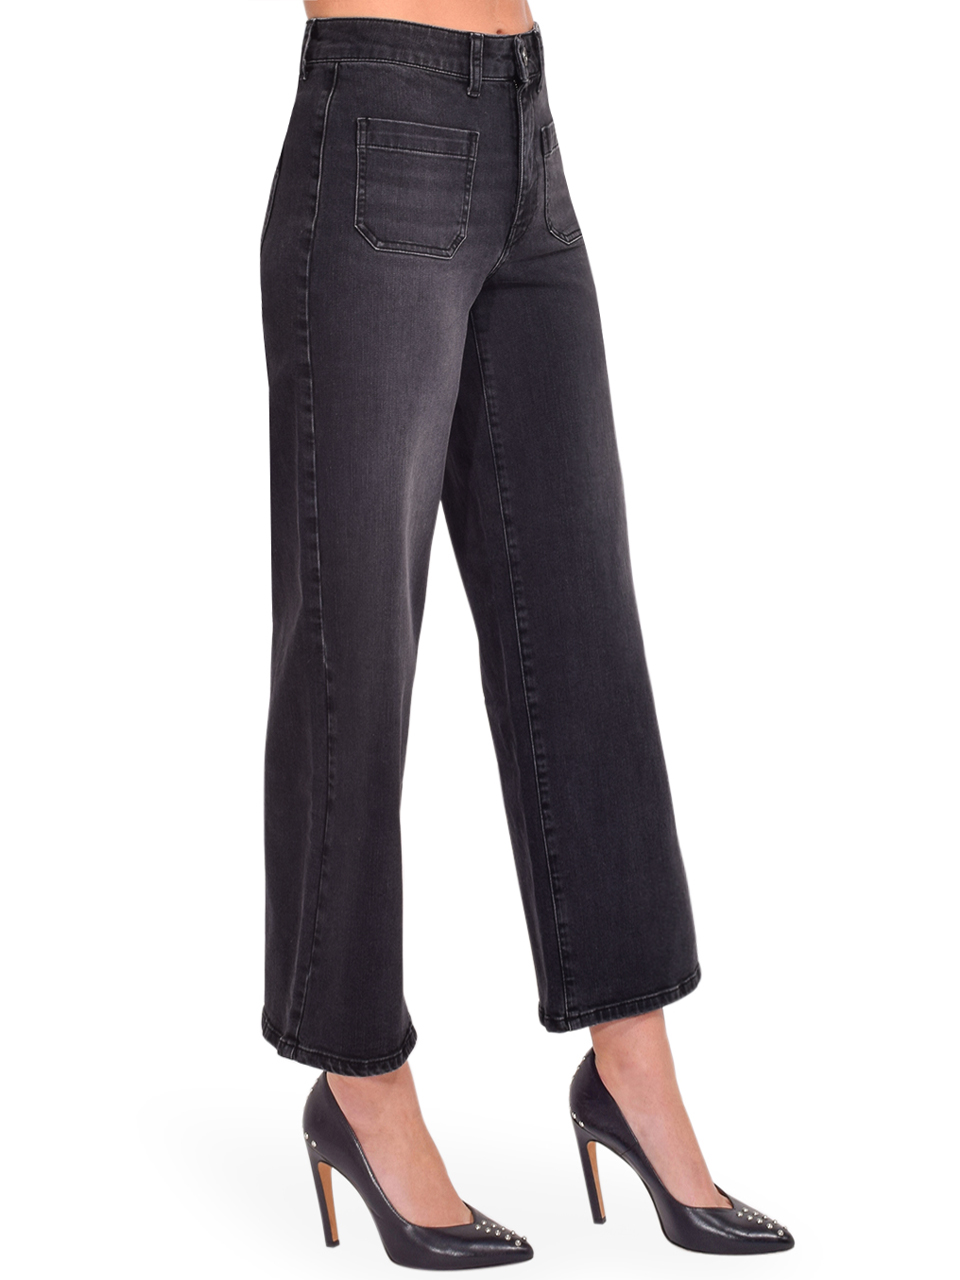 Ottod'Ame Cropped French Jeans in Black Side View